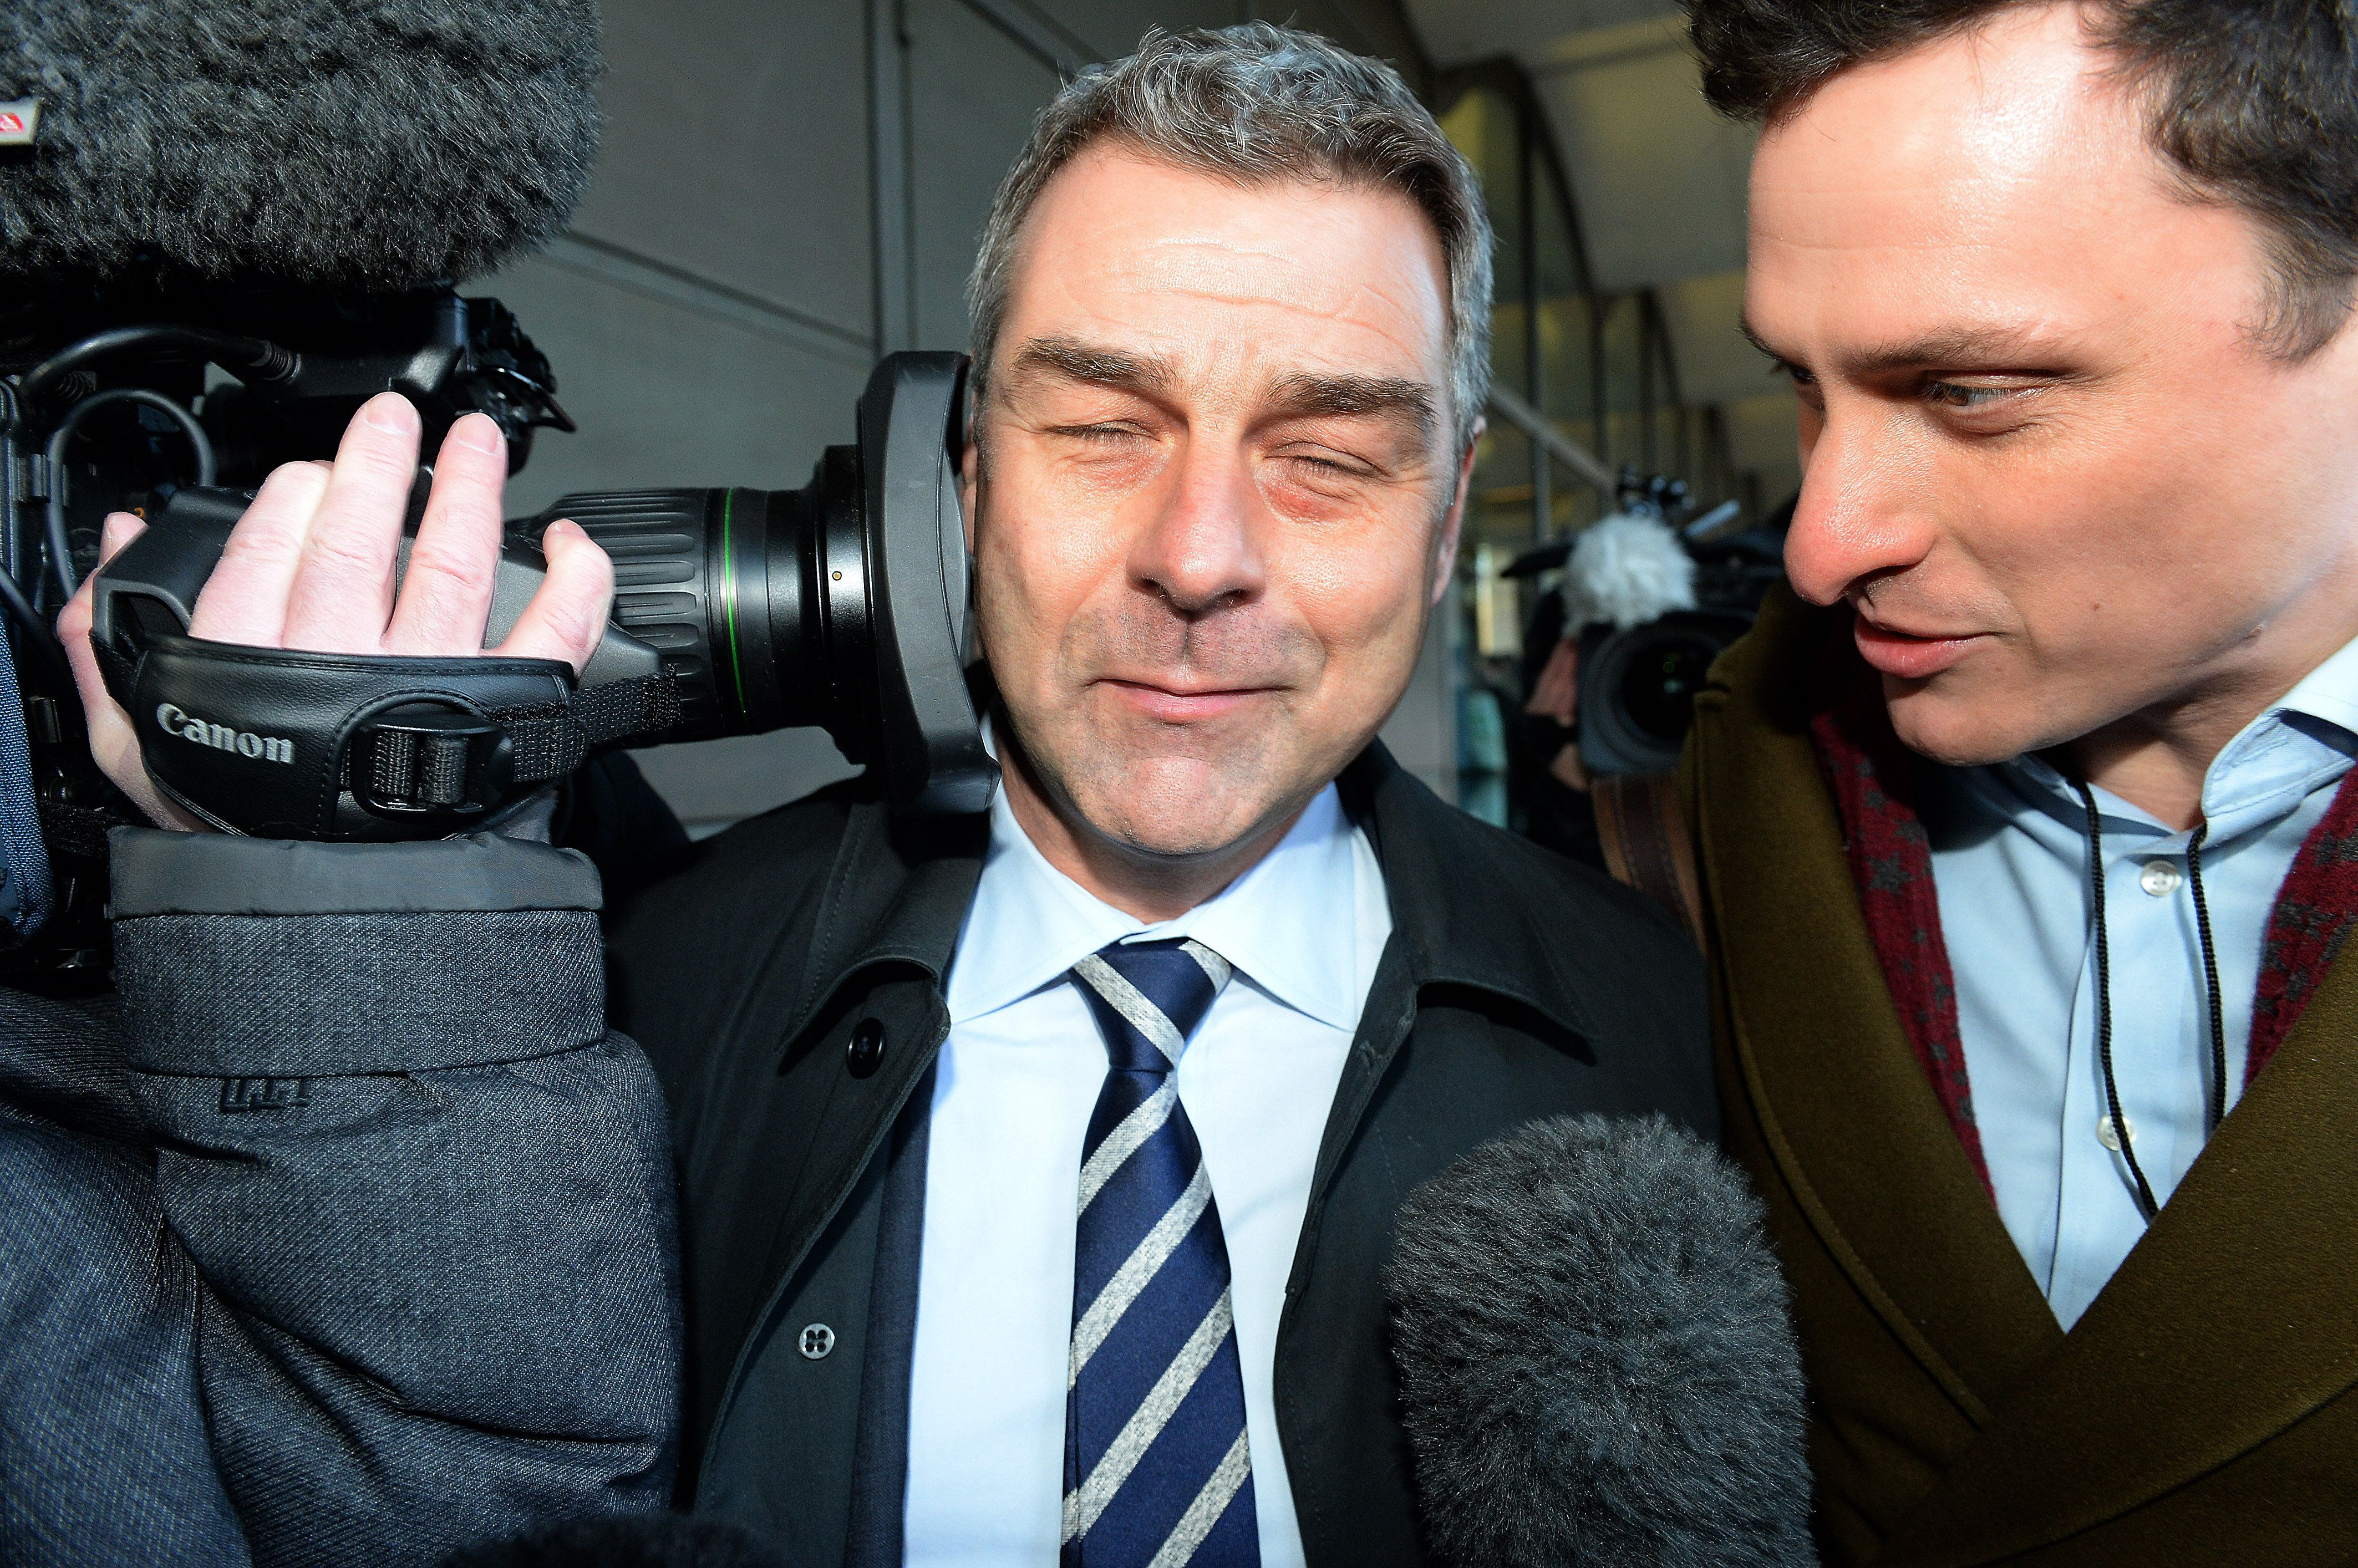 Richard Howson, former Chief Executive, reacts as a TV camera is pressed into his face leaves, as he leaves Portcullis House in London after answering MPs' questions.